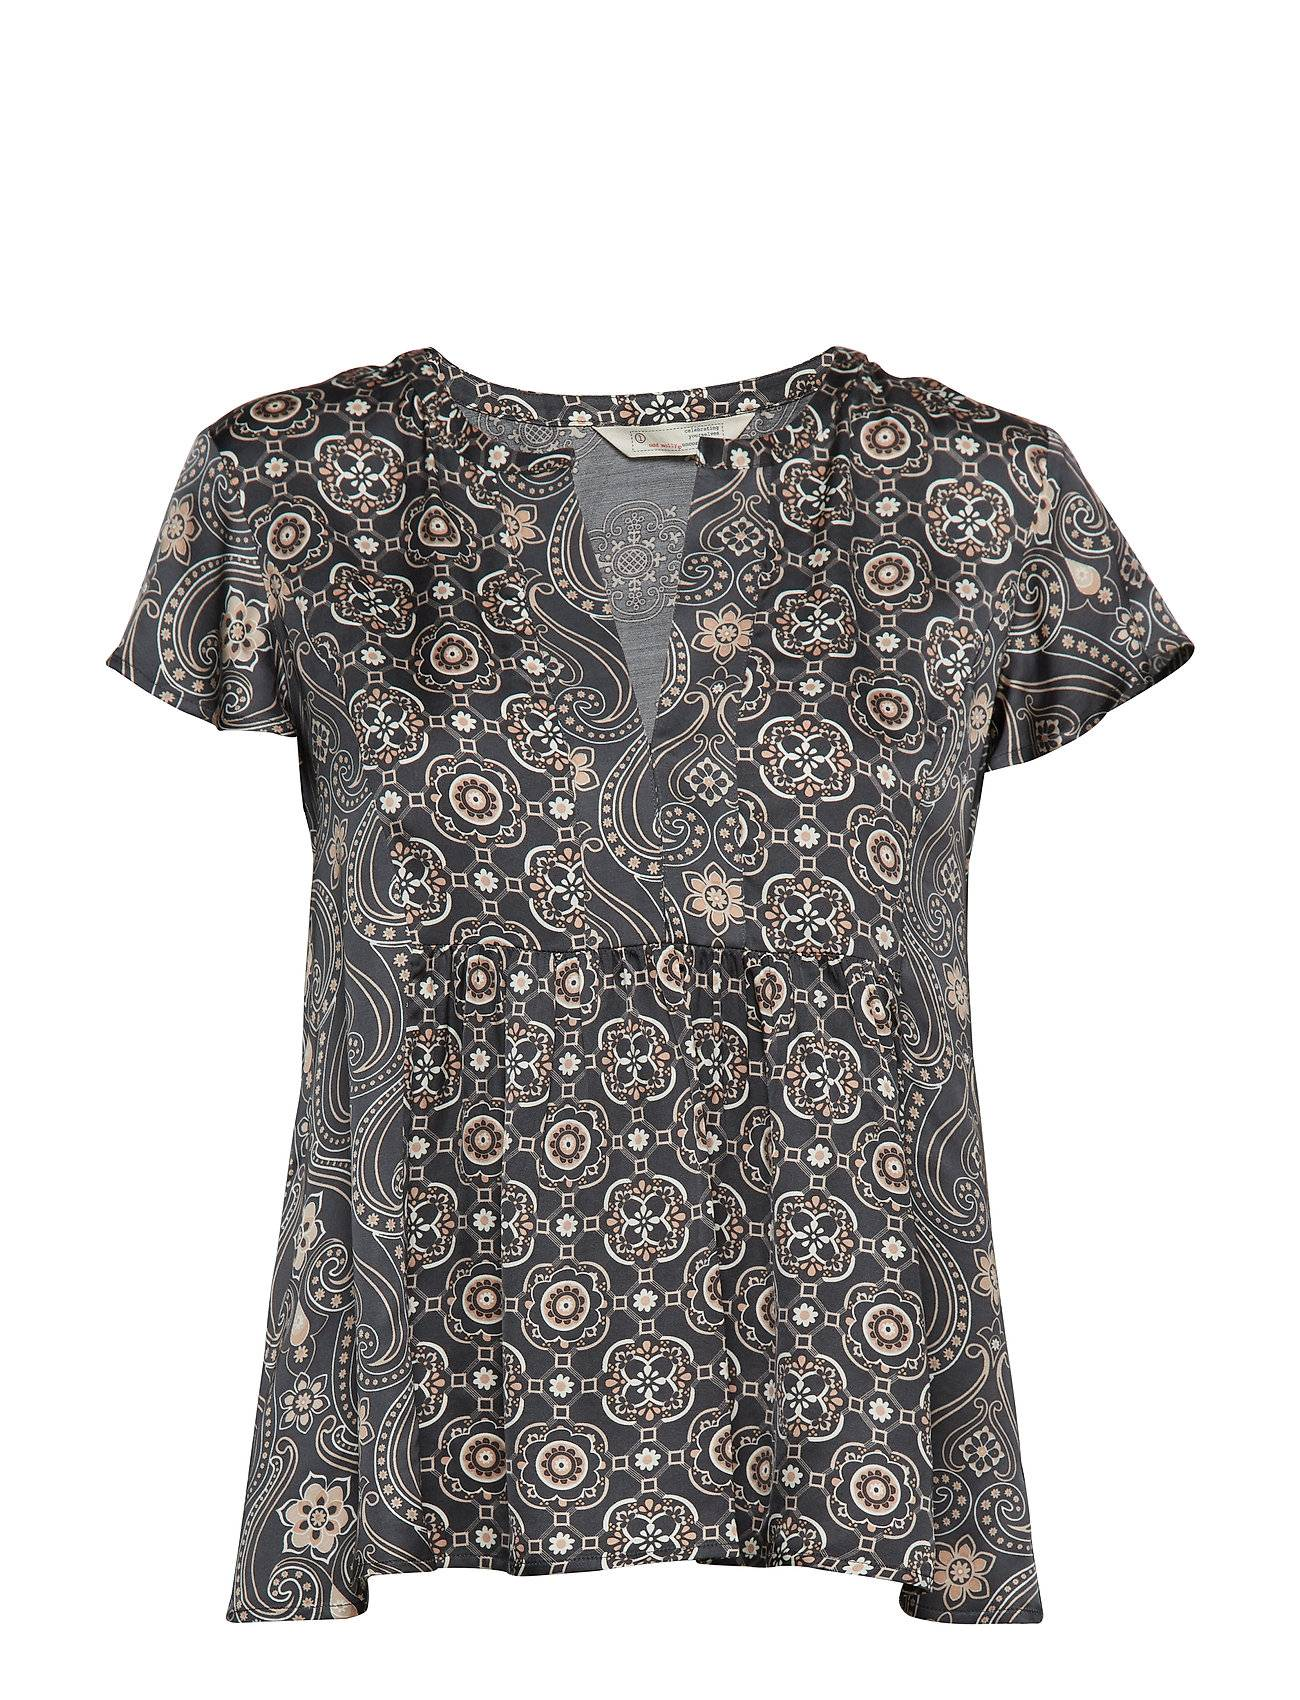 Image of ODD MOLLY Funky Belle Blouse Blouses Short-sleeved Musta ODD MOLLY